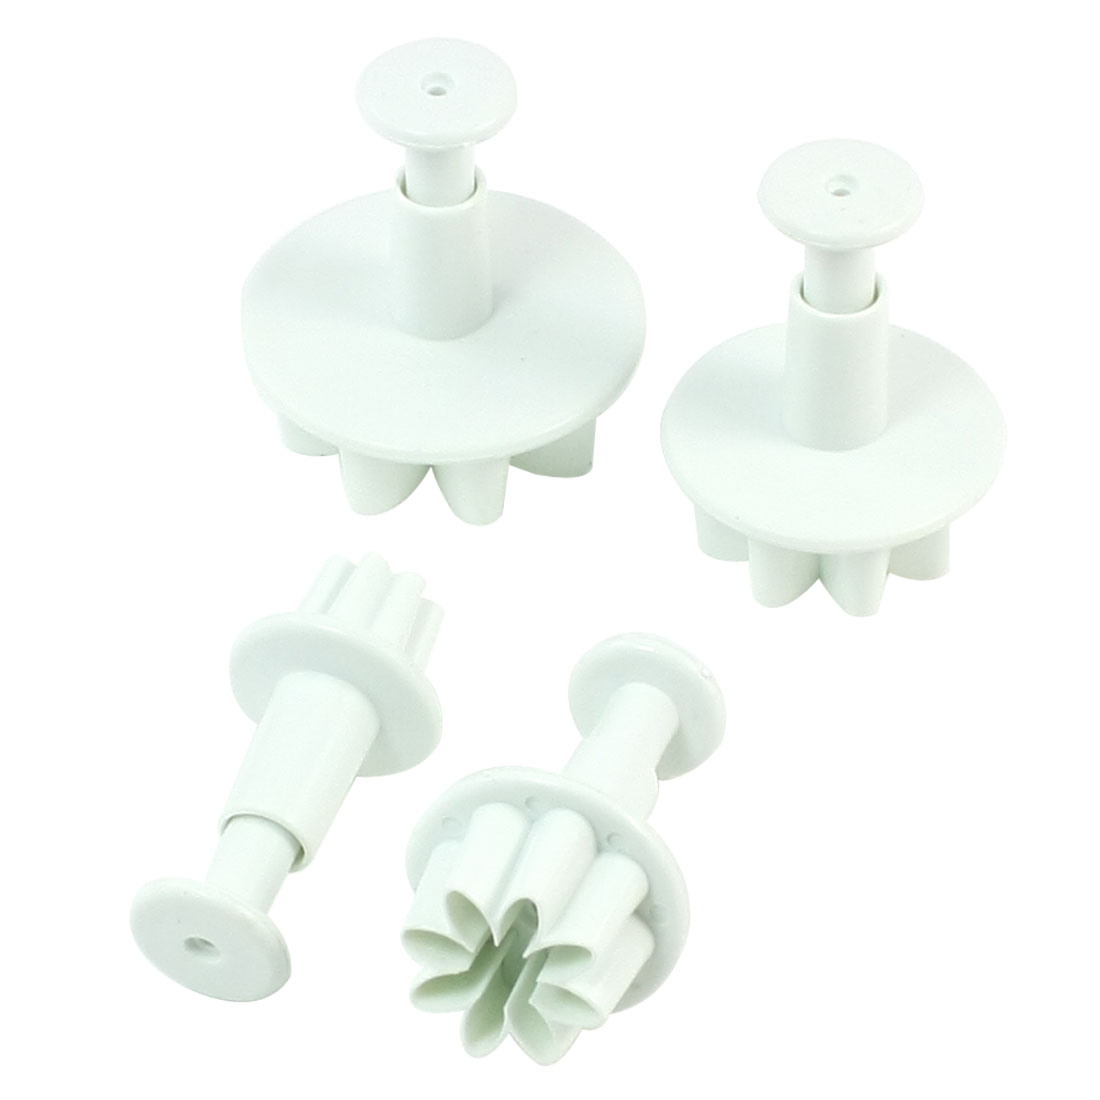 4 Pcs Daisy Design Spring Loaded Cutter Plunger for Cake Cookie Molding